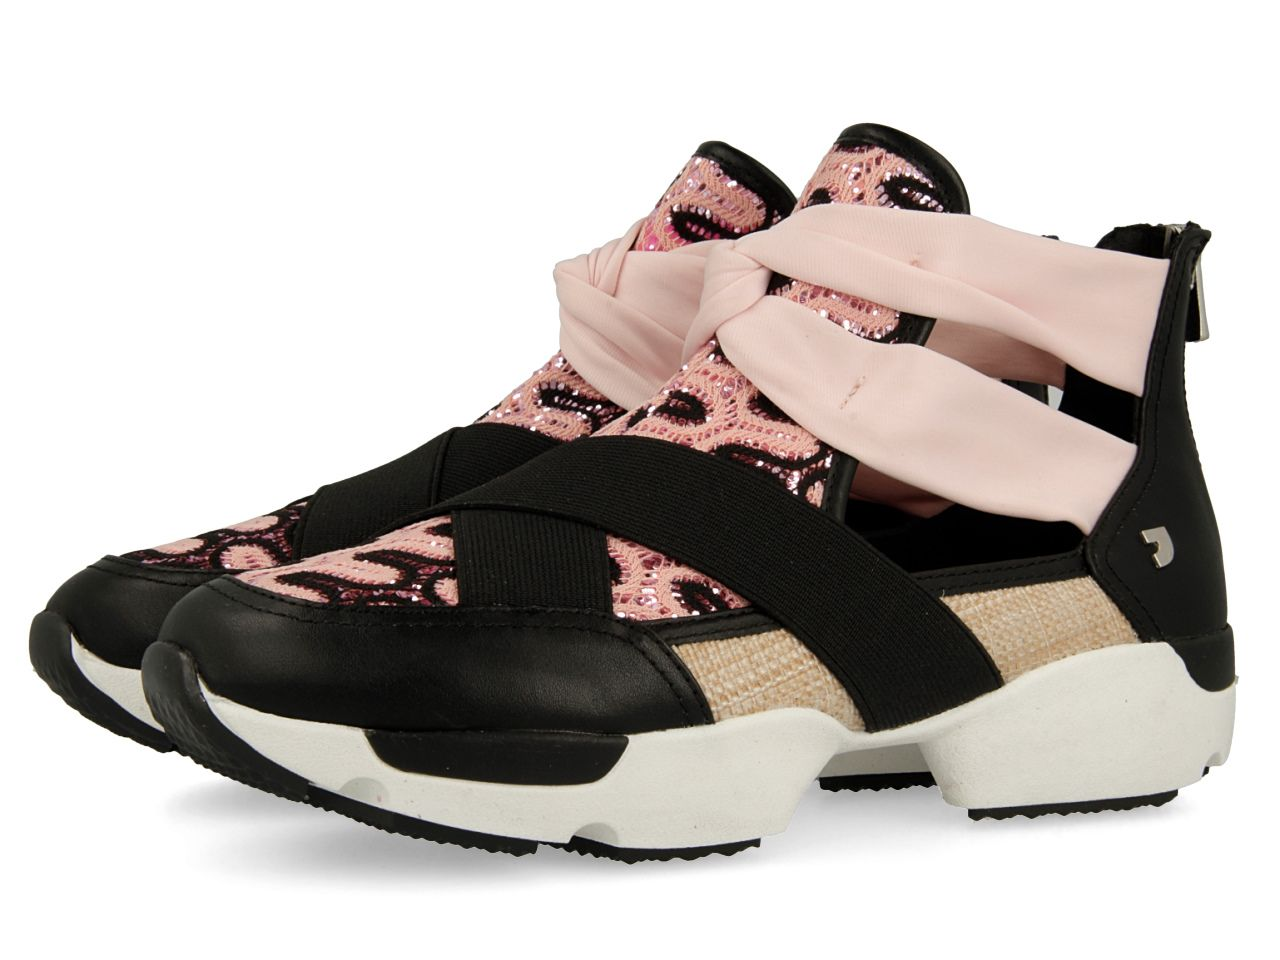 Gioseppo Gioseppo Pink Walking Shoes, Pink